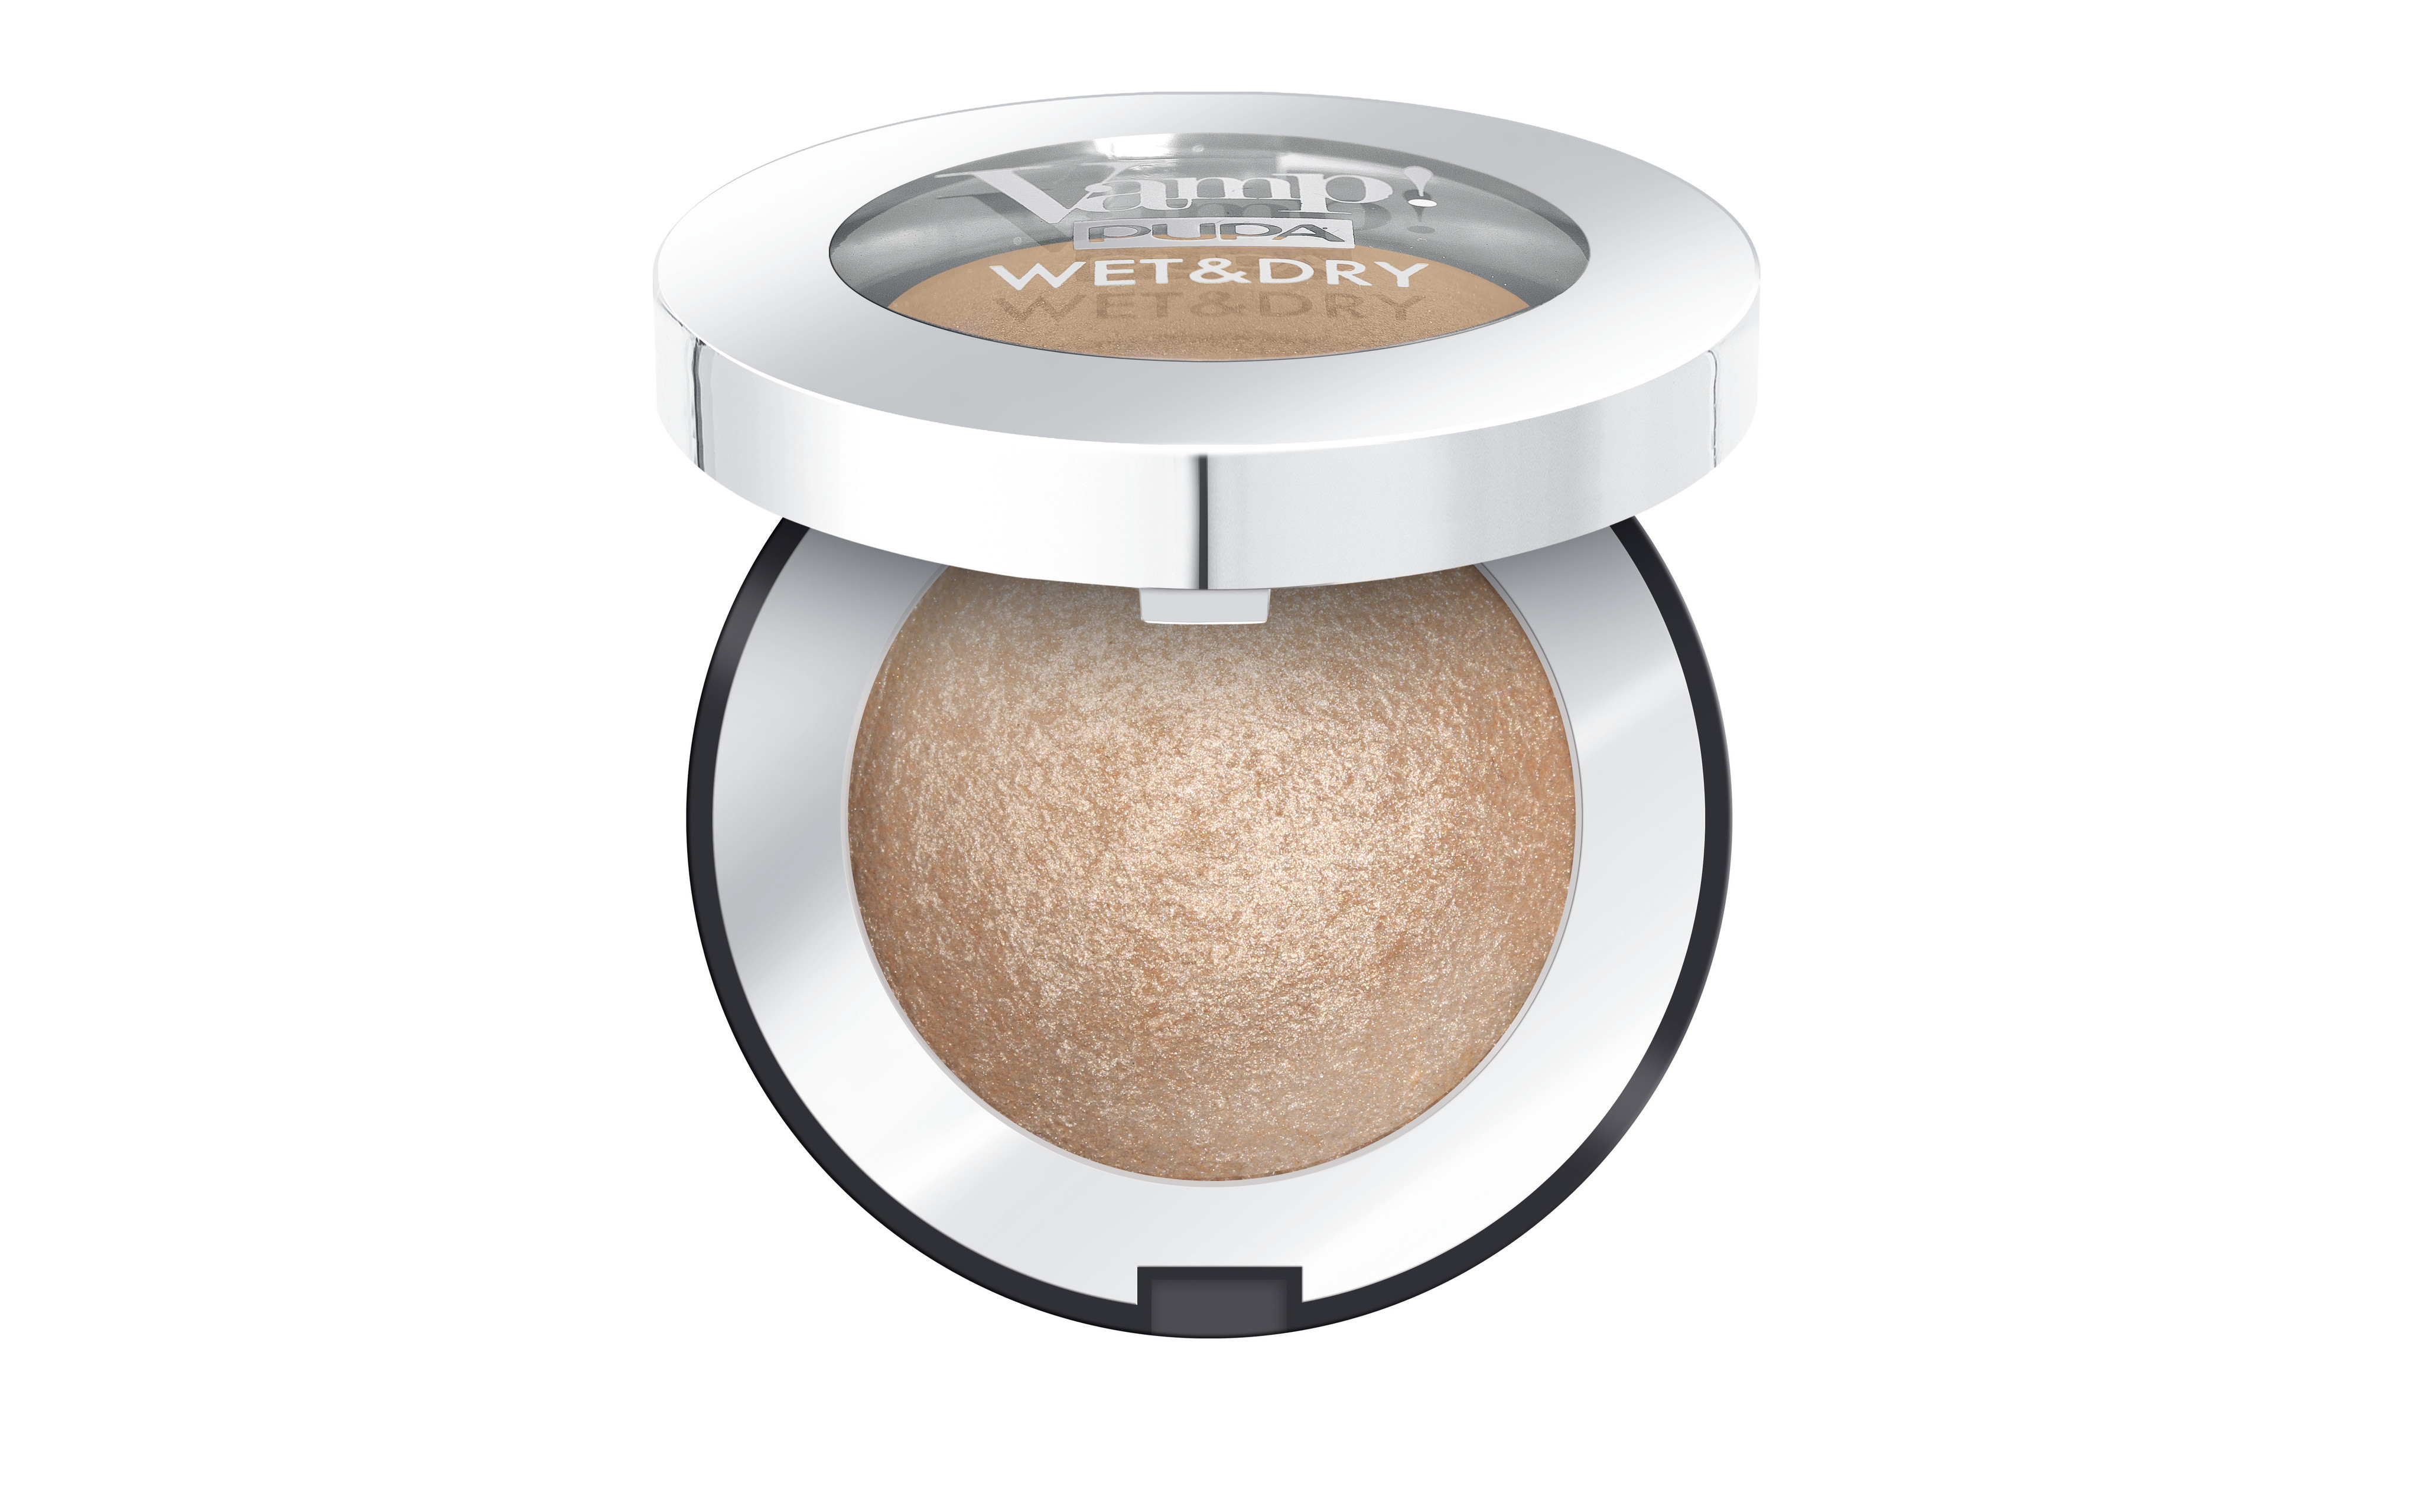 Pupa vamp! Wet&dry ombretto - 100, 100CHAMPAGNE GOLD, large image number 0